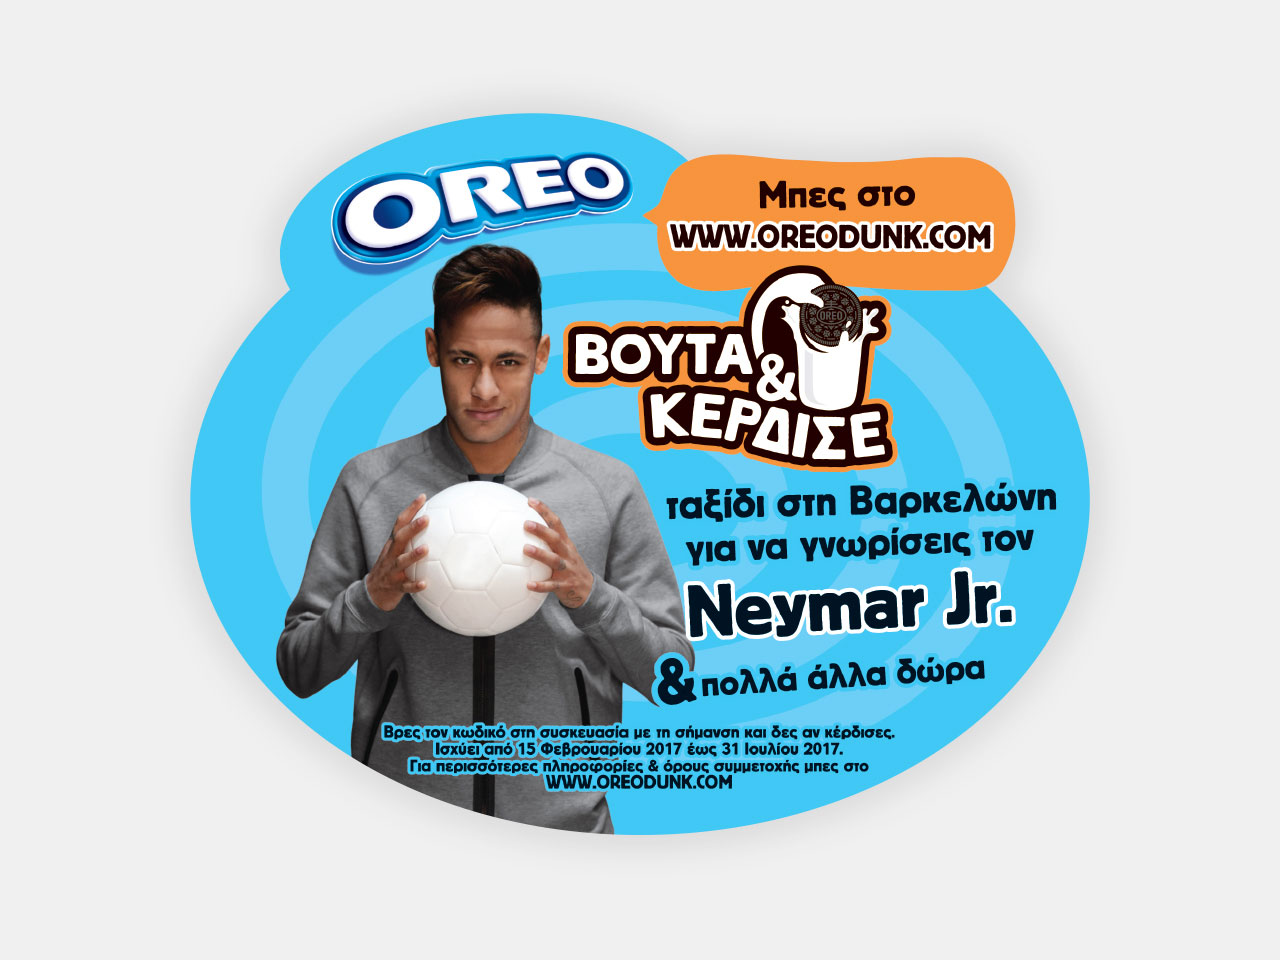 OREO Dunk Challenge in-store shelf index